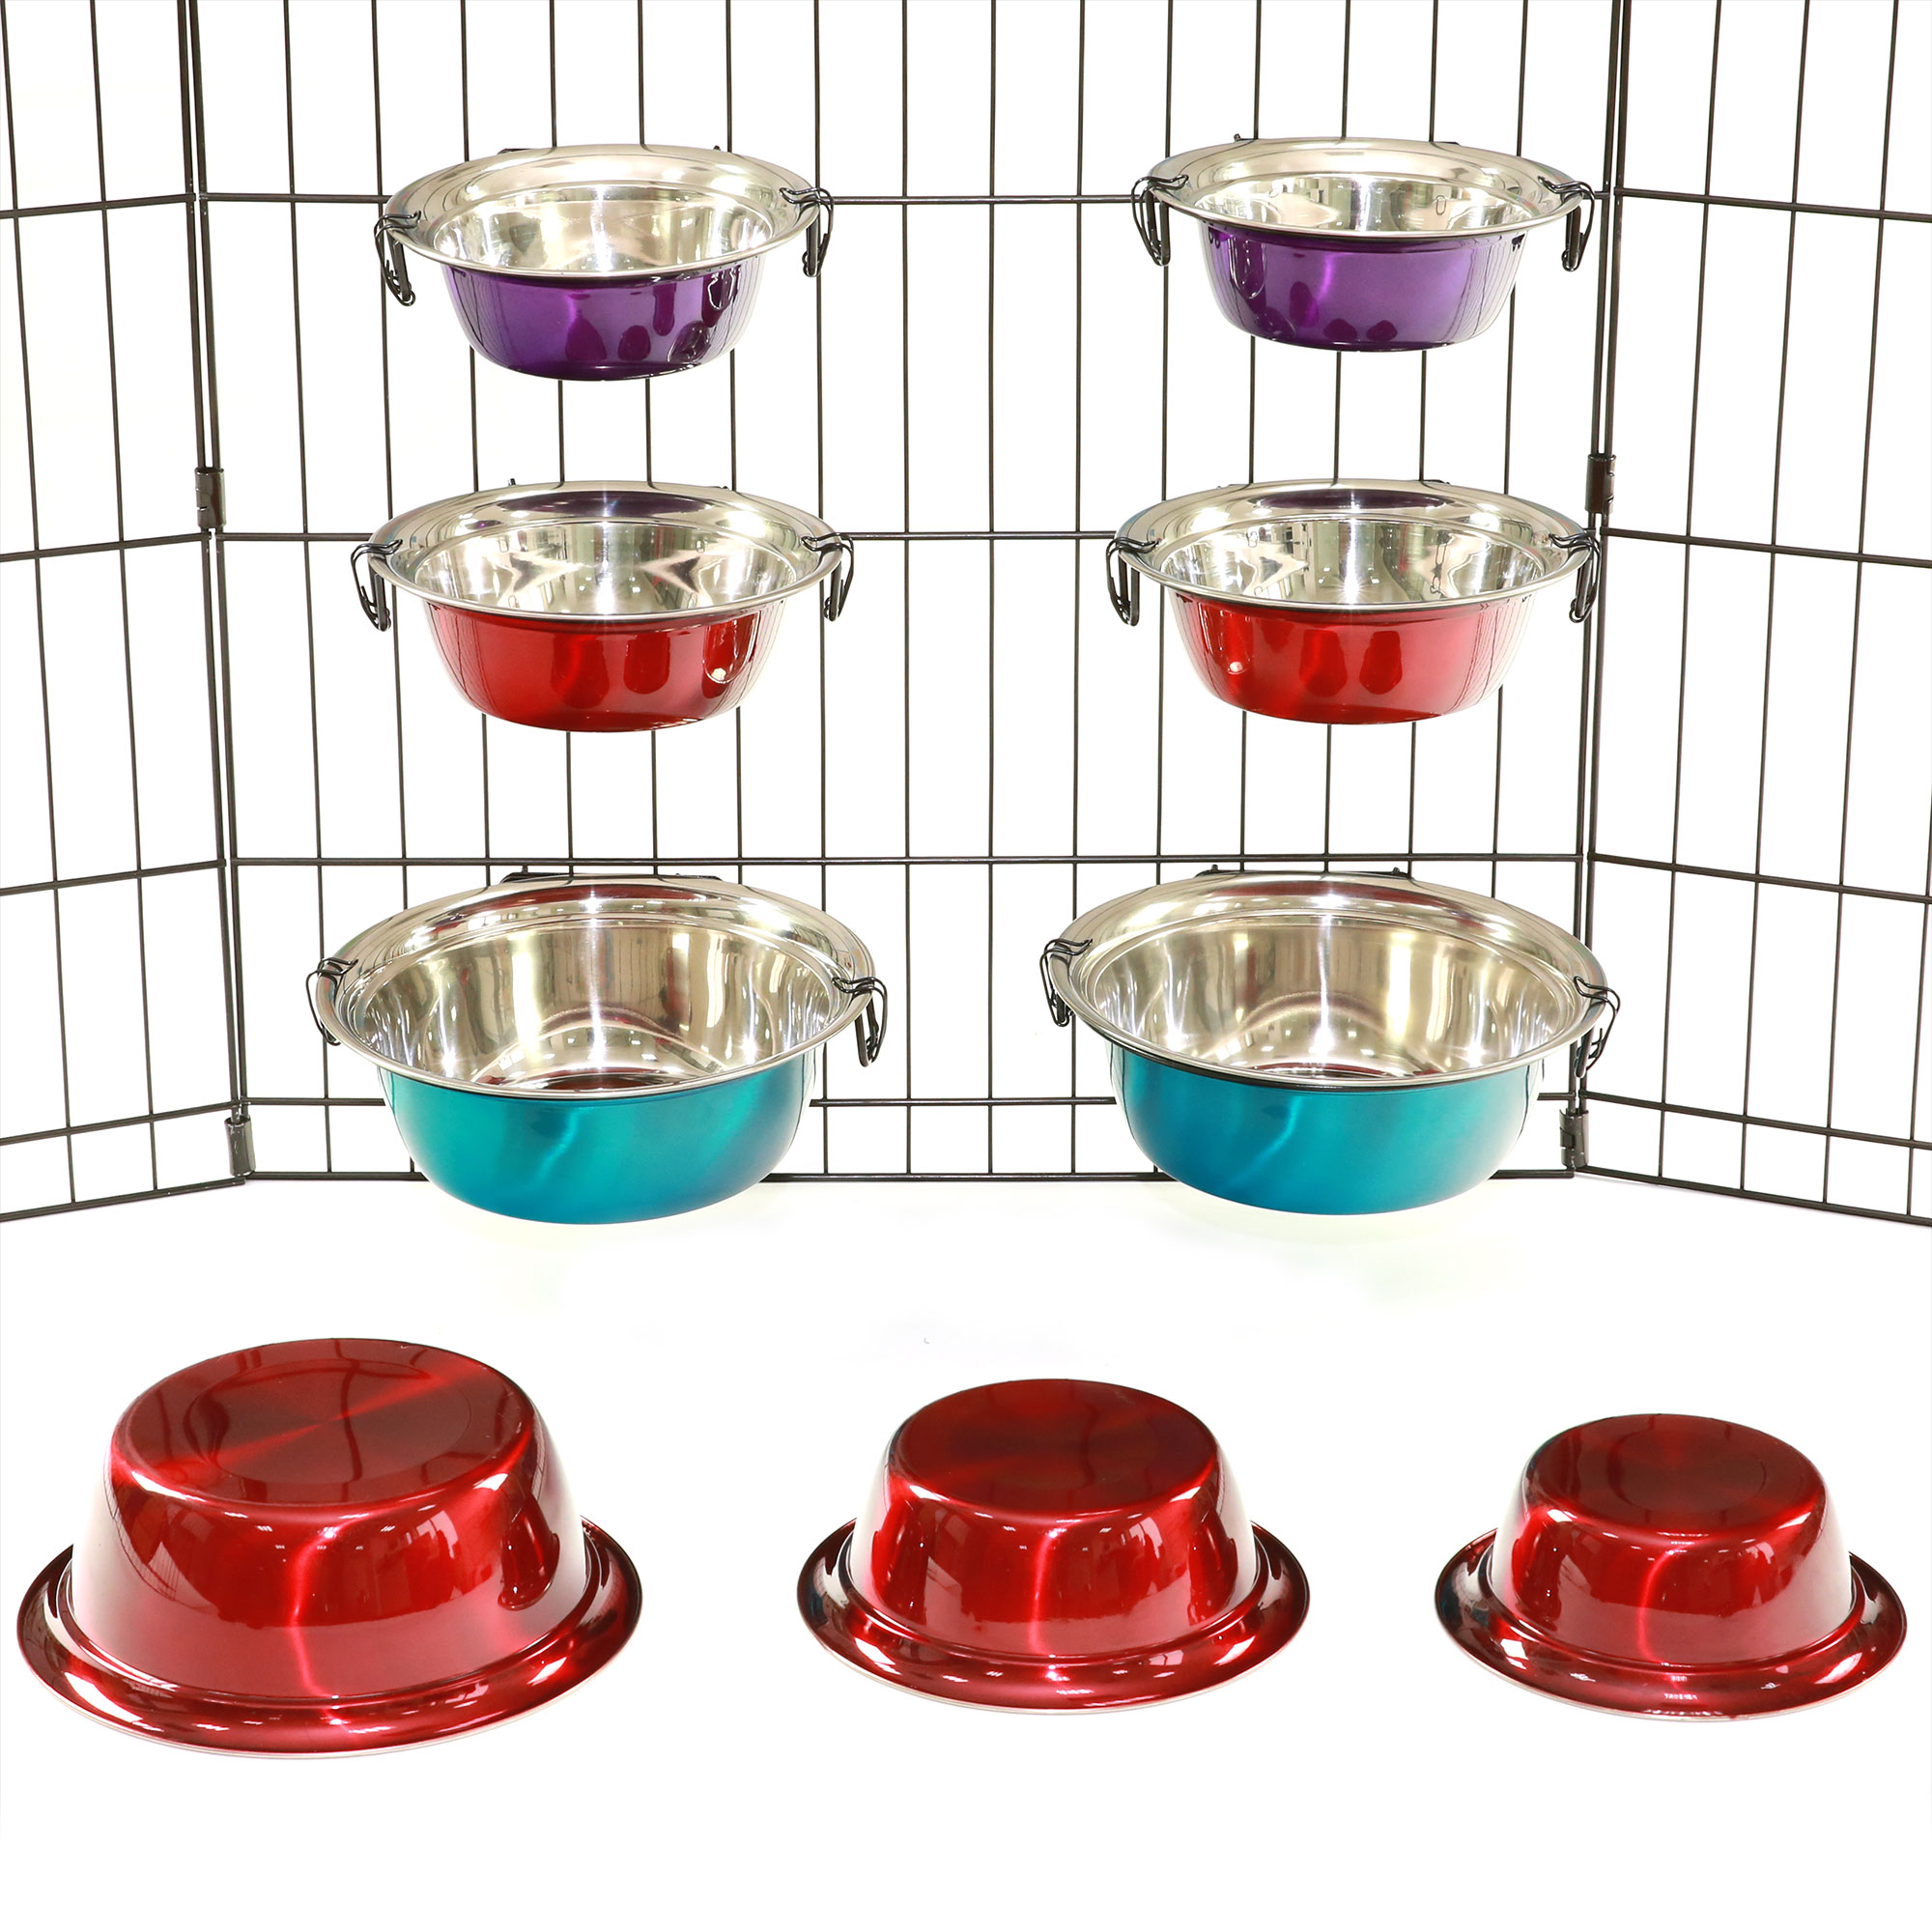 Stainless Steel Dog Crate Uk